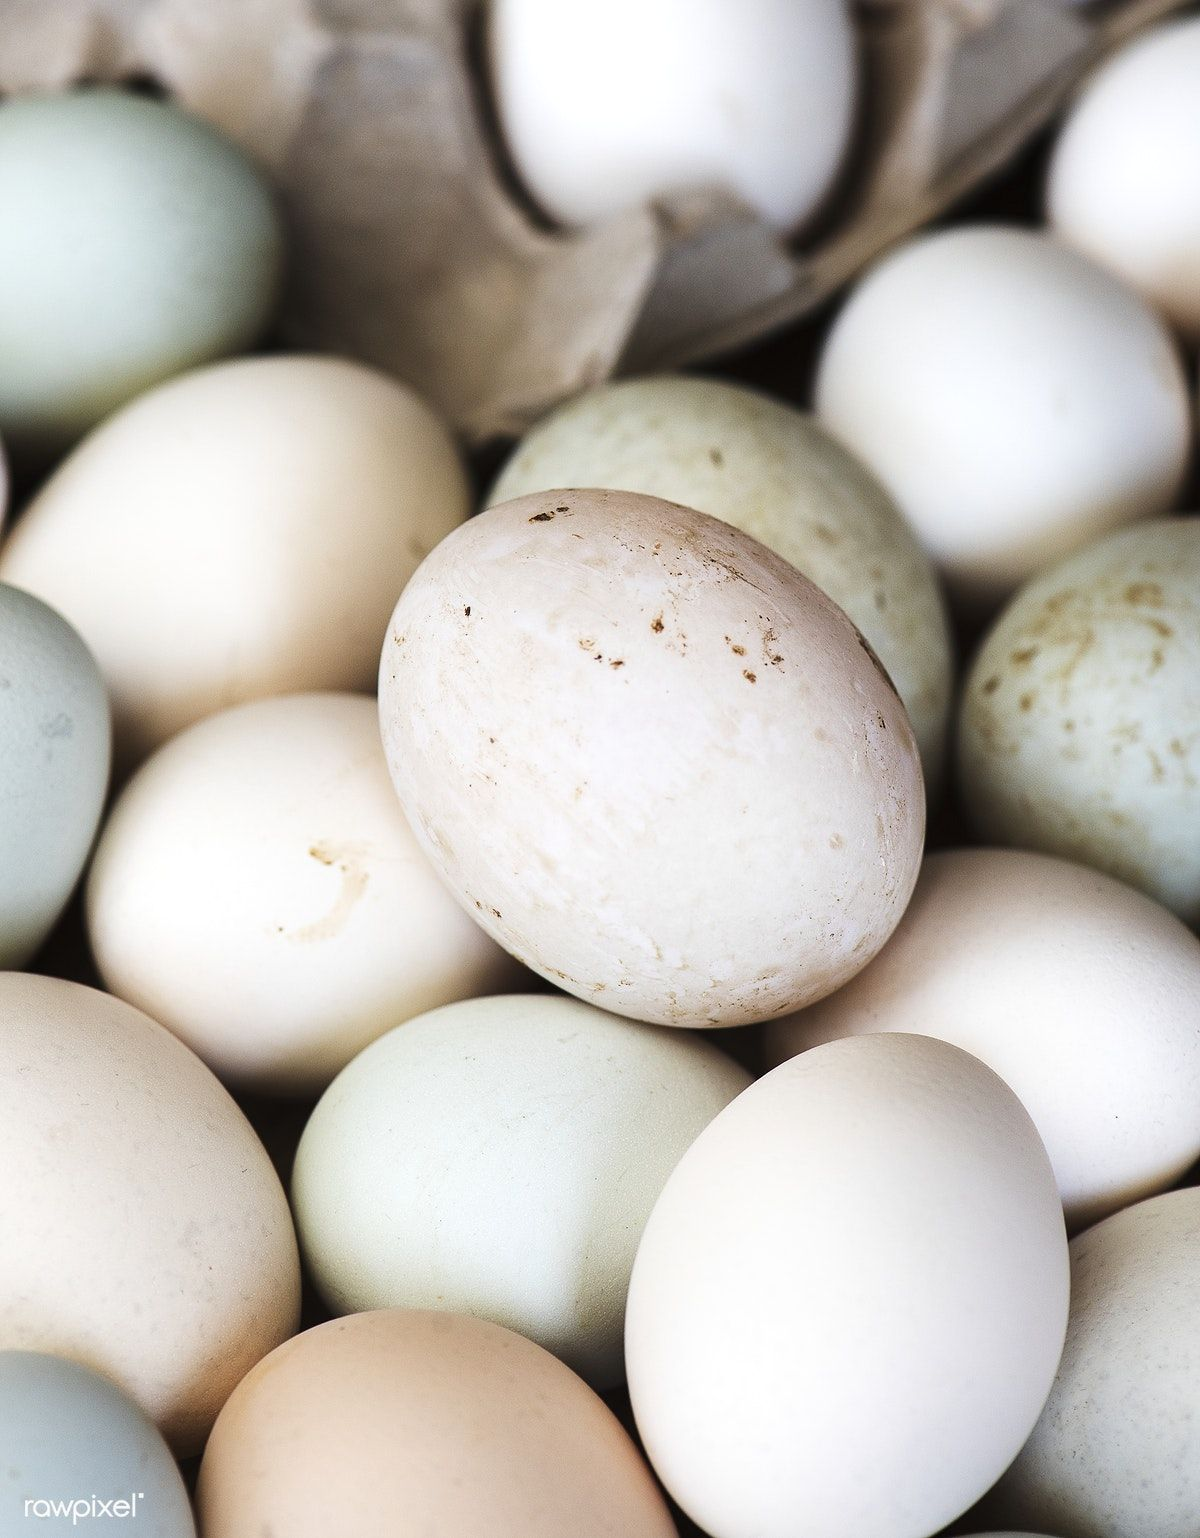 Fresh Organic Eggs From The Farm Free Image By Rawpixel Com